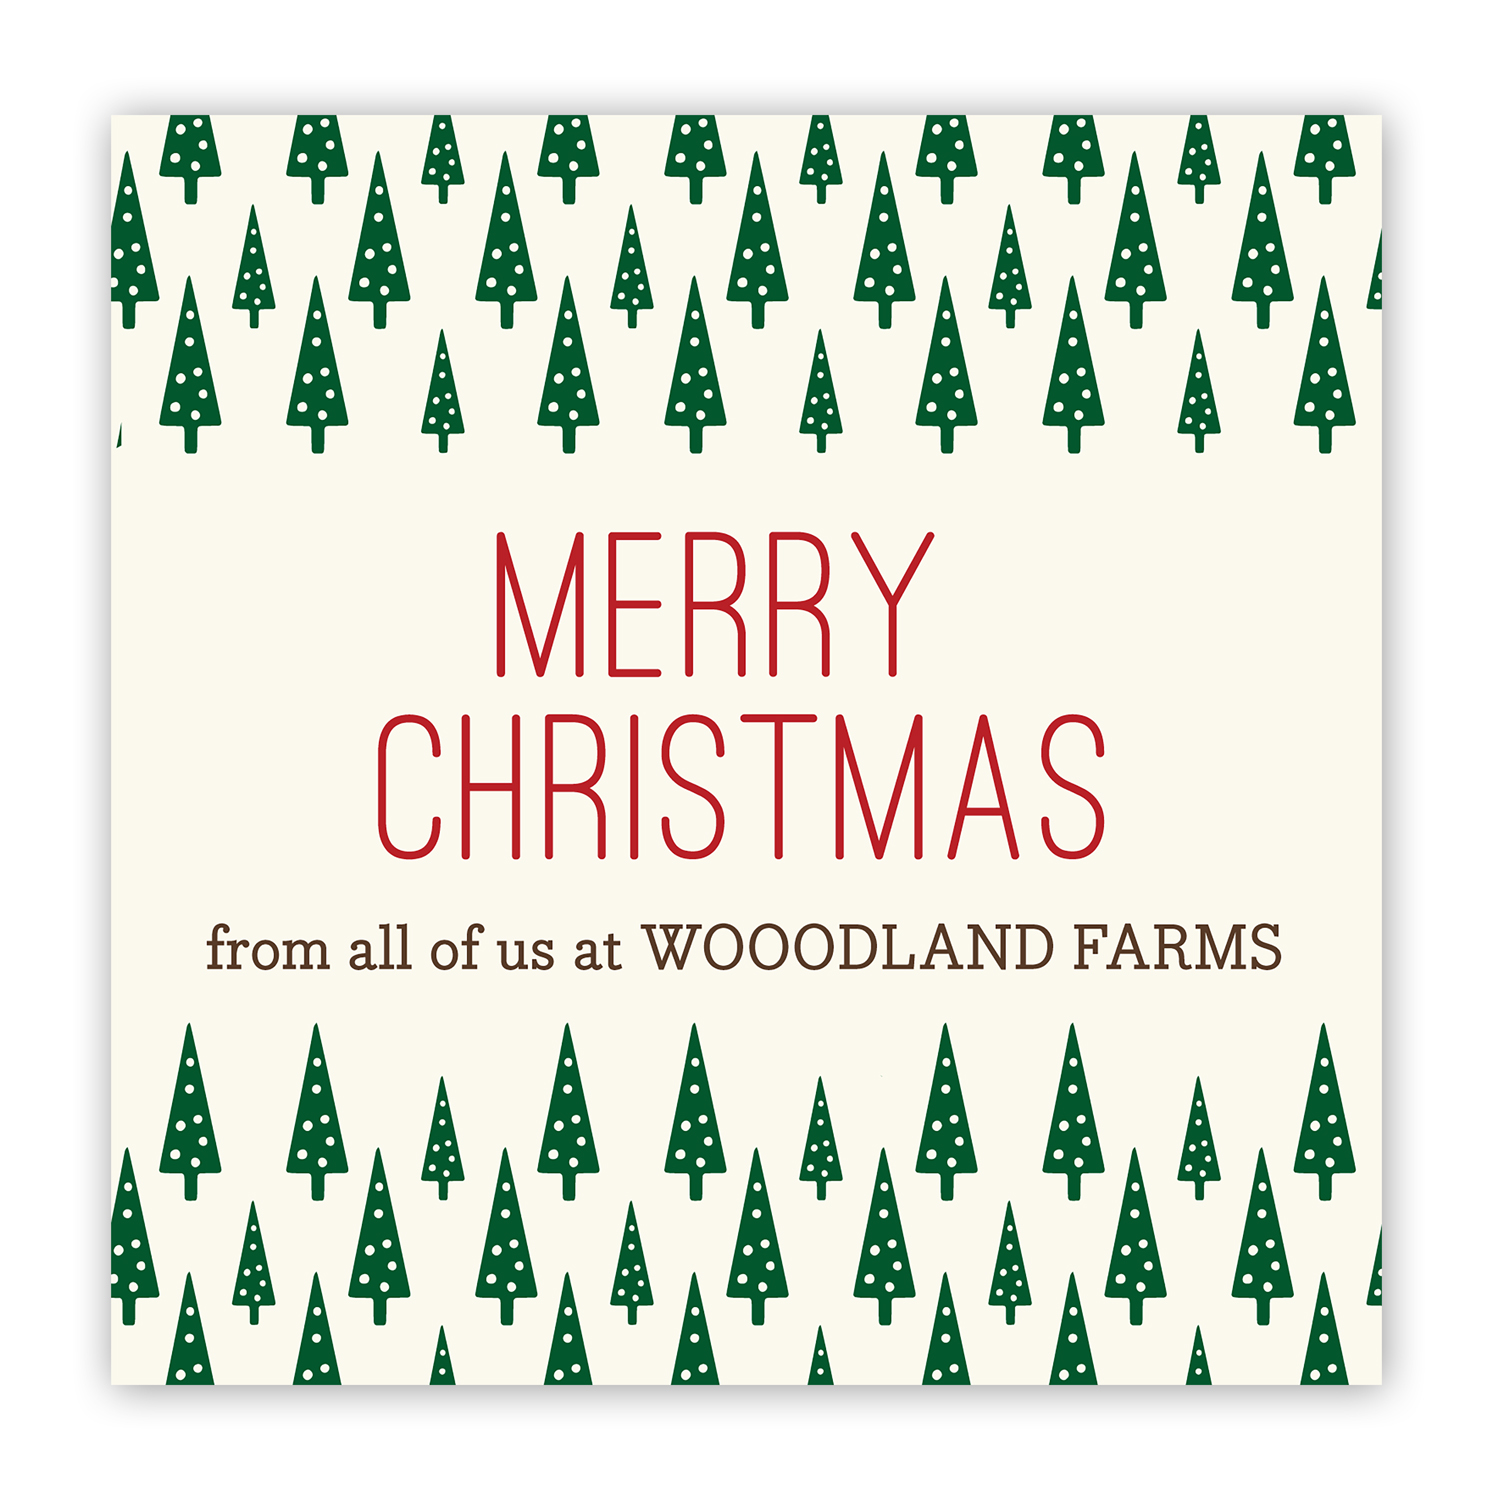 Christmas Tree Farm Personalized Holiday Window Cling, Multiple Sizes